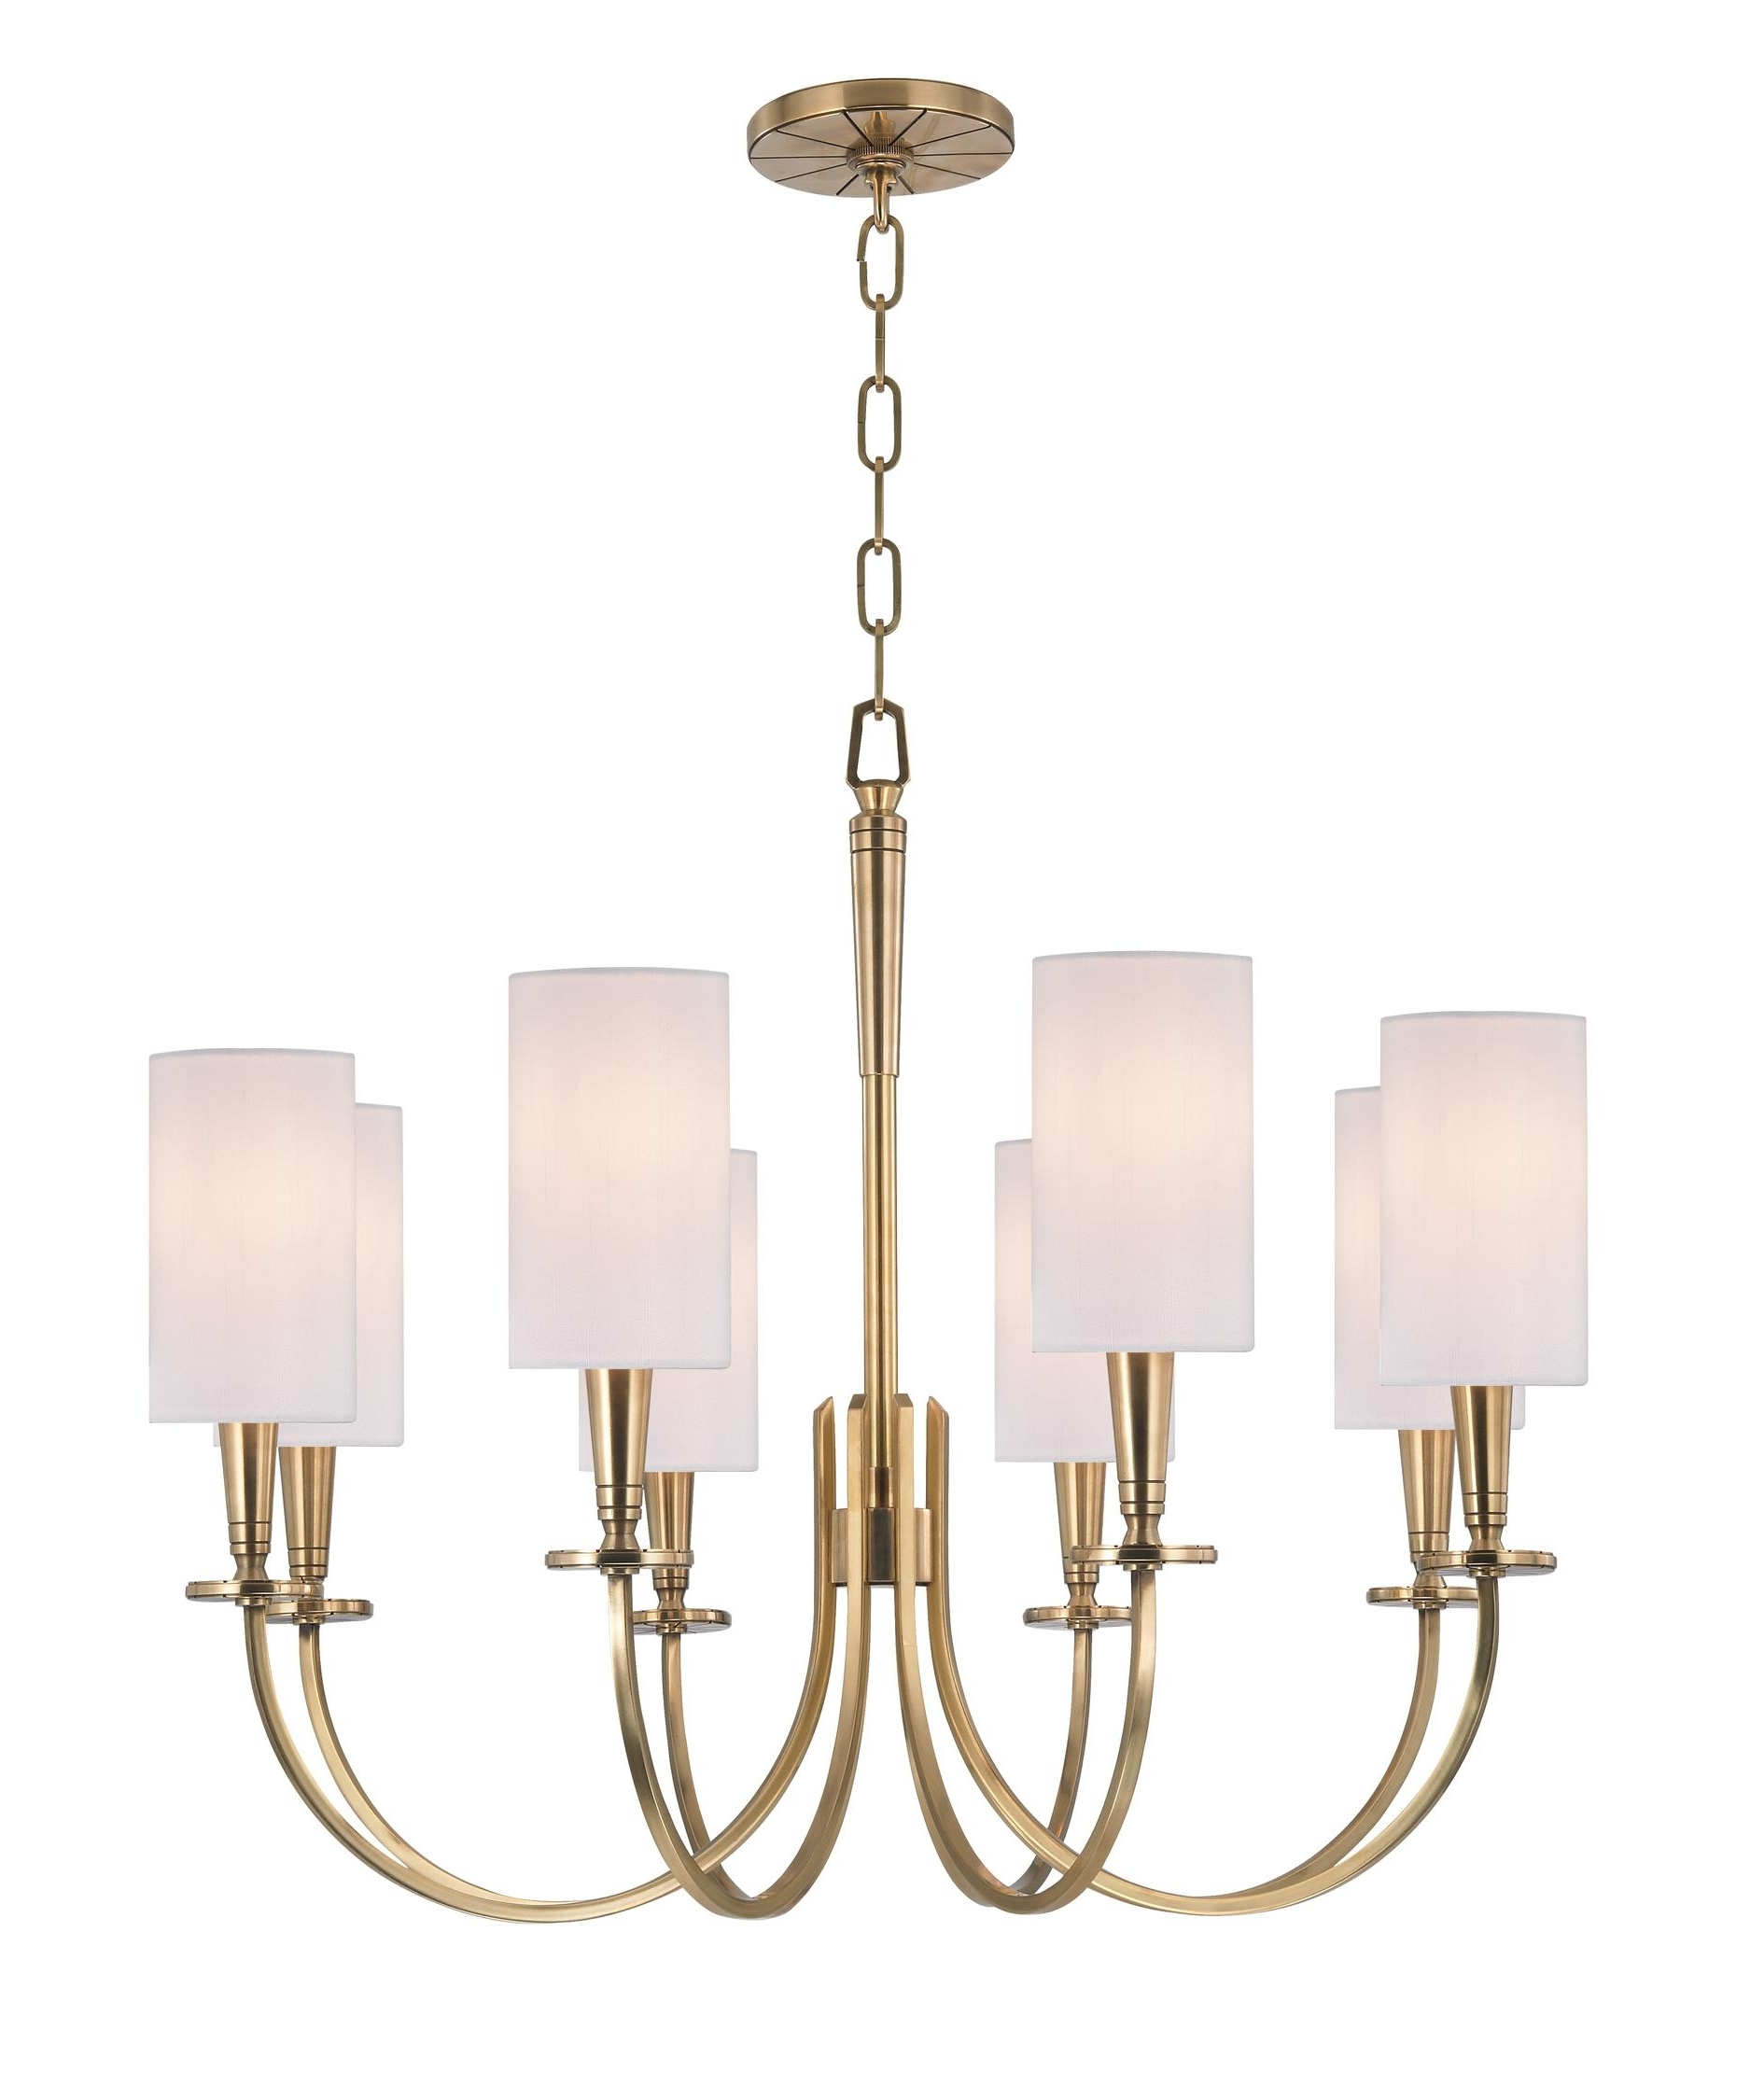 Latest Light : Agb Hudson Valley Chandelier Lighting Wall Sconces Shown In Within Antique Mirror Chandelier (View 10 of 15)